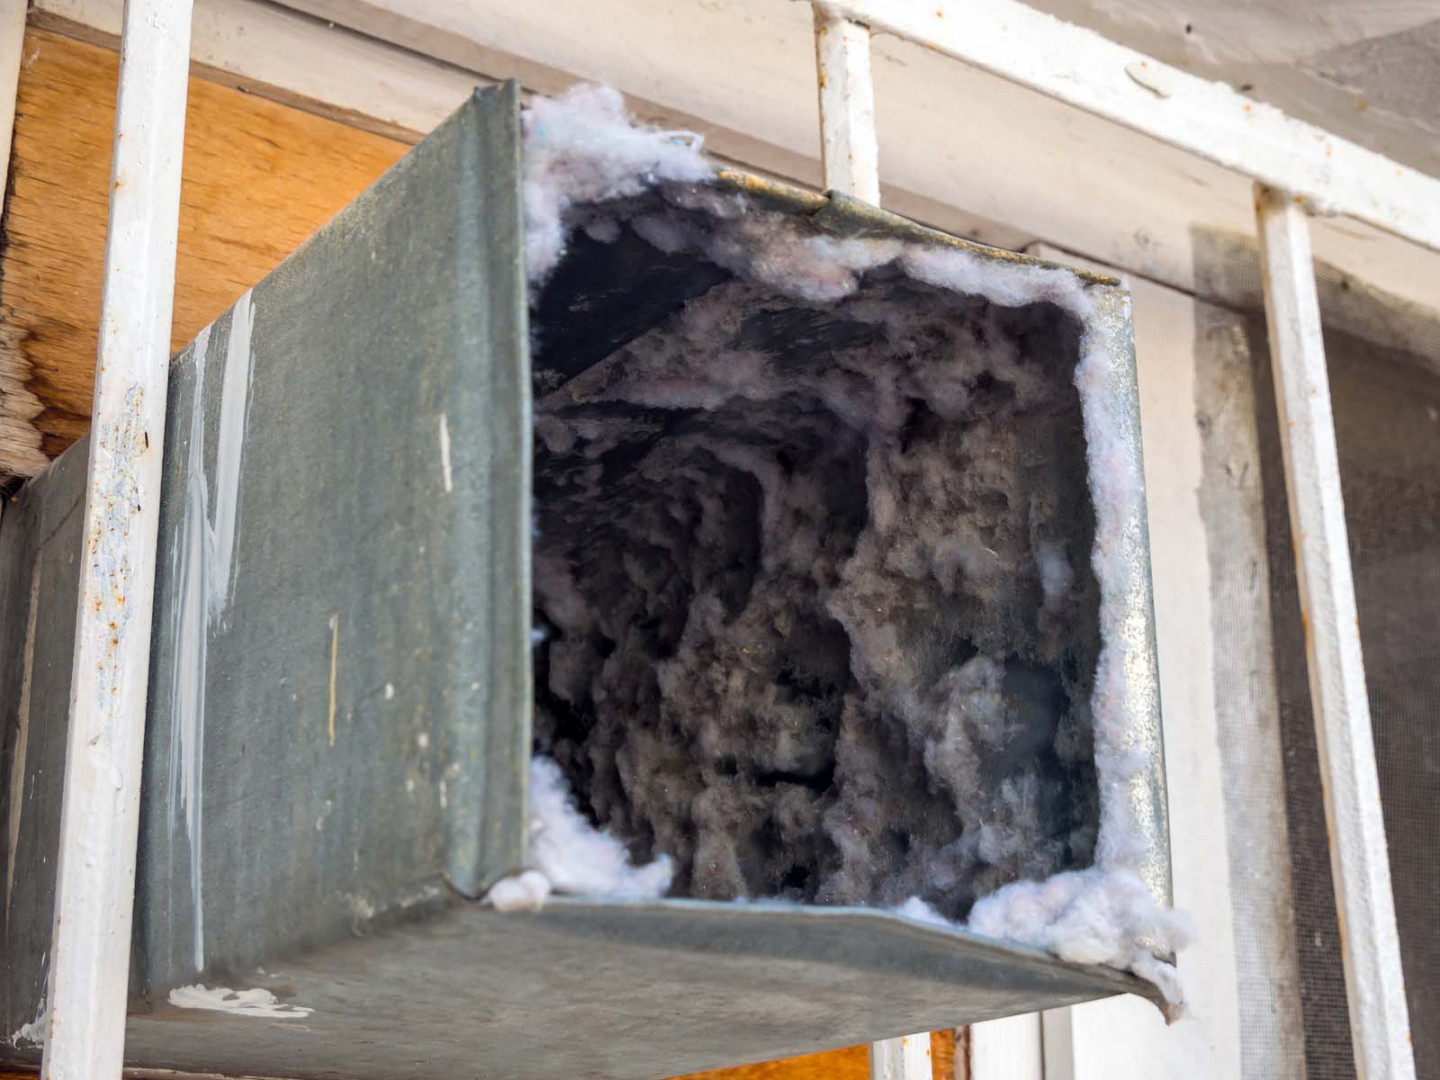 Dryer vent cleaning is about safety